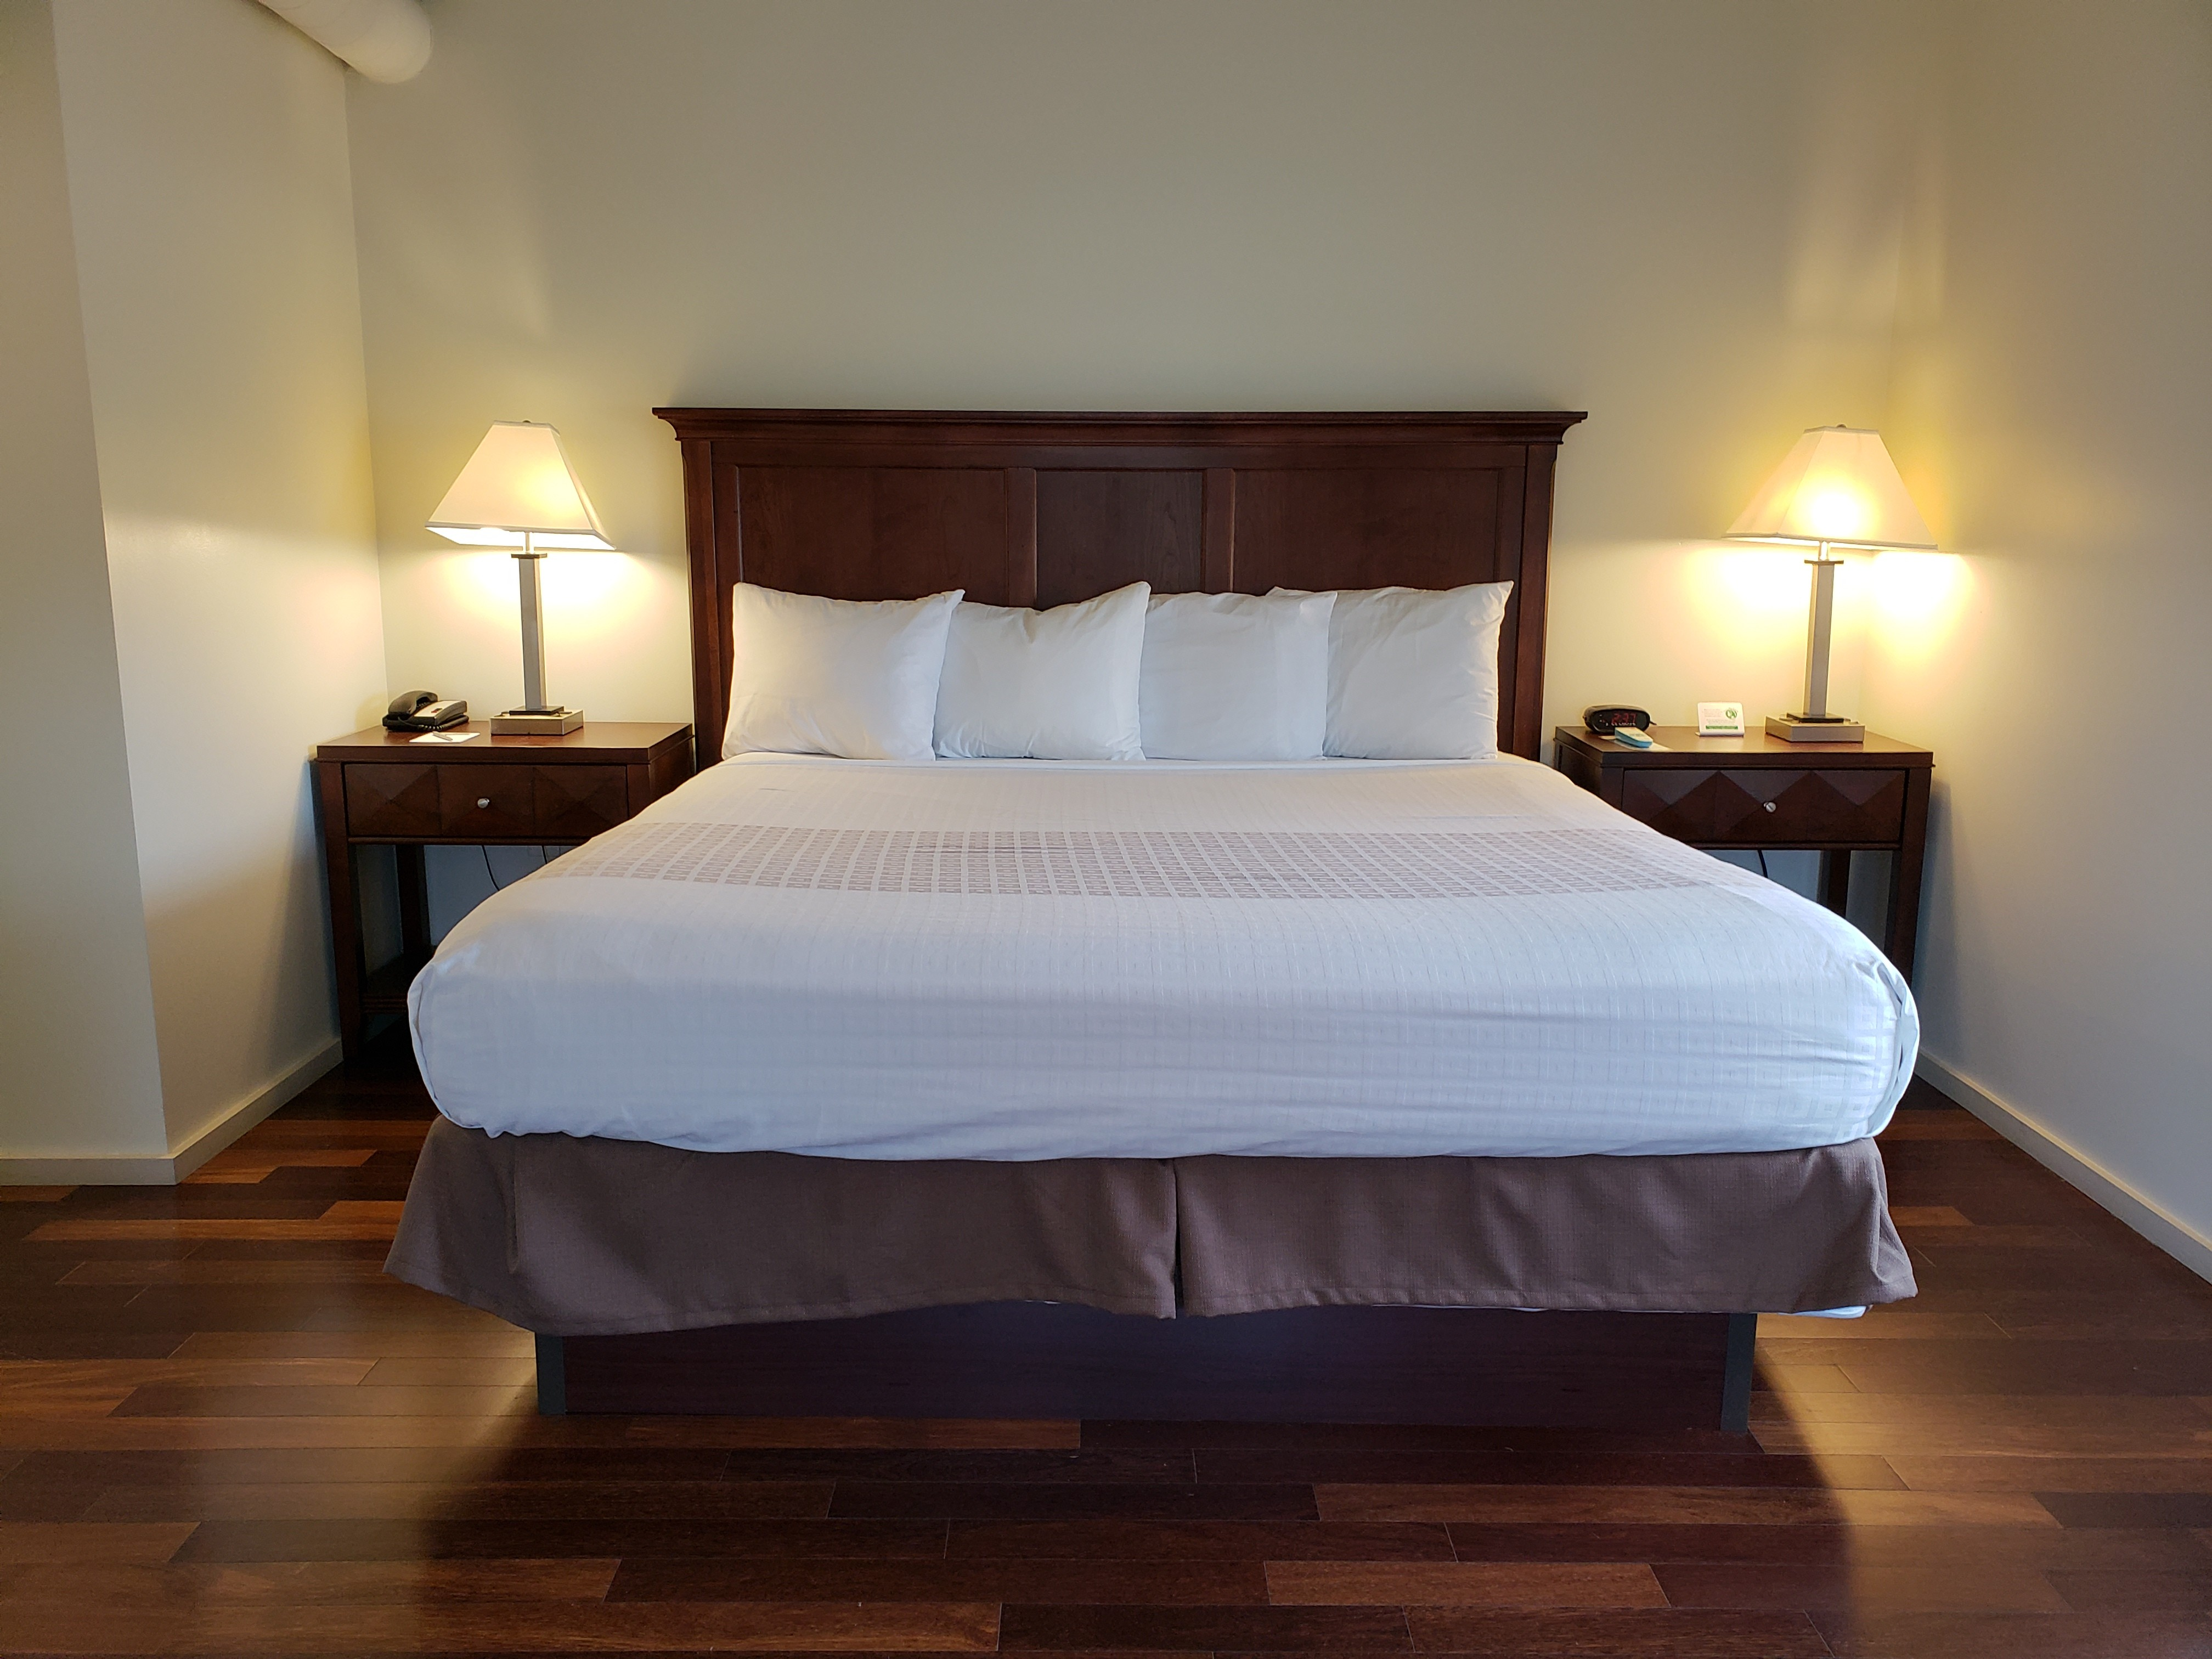 king sized bed with nightstands and lamps